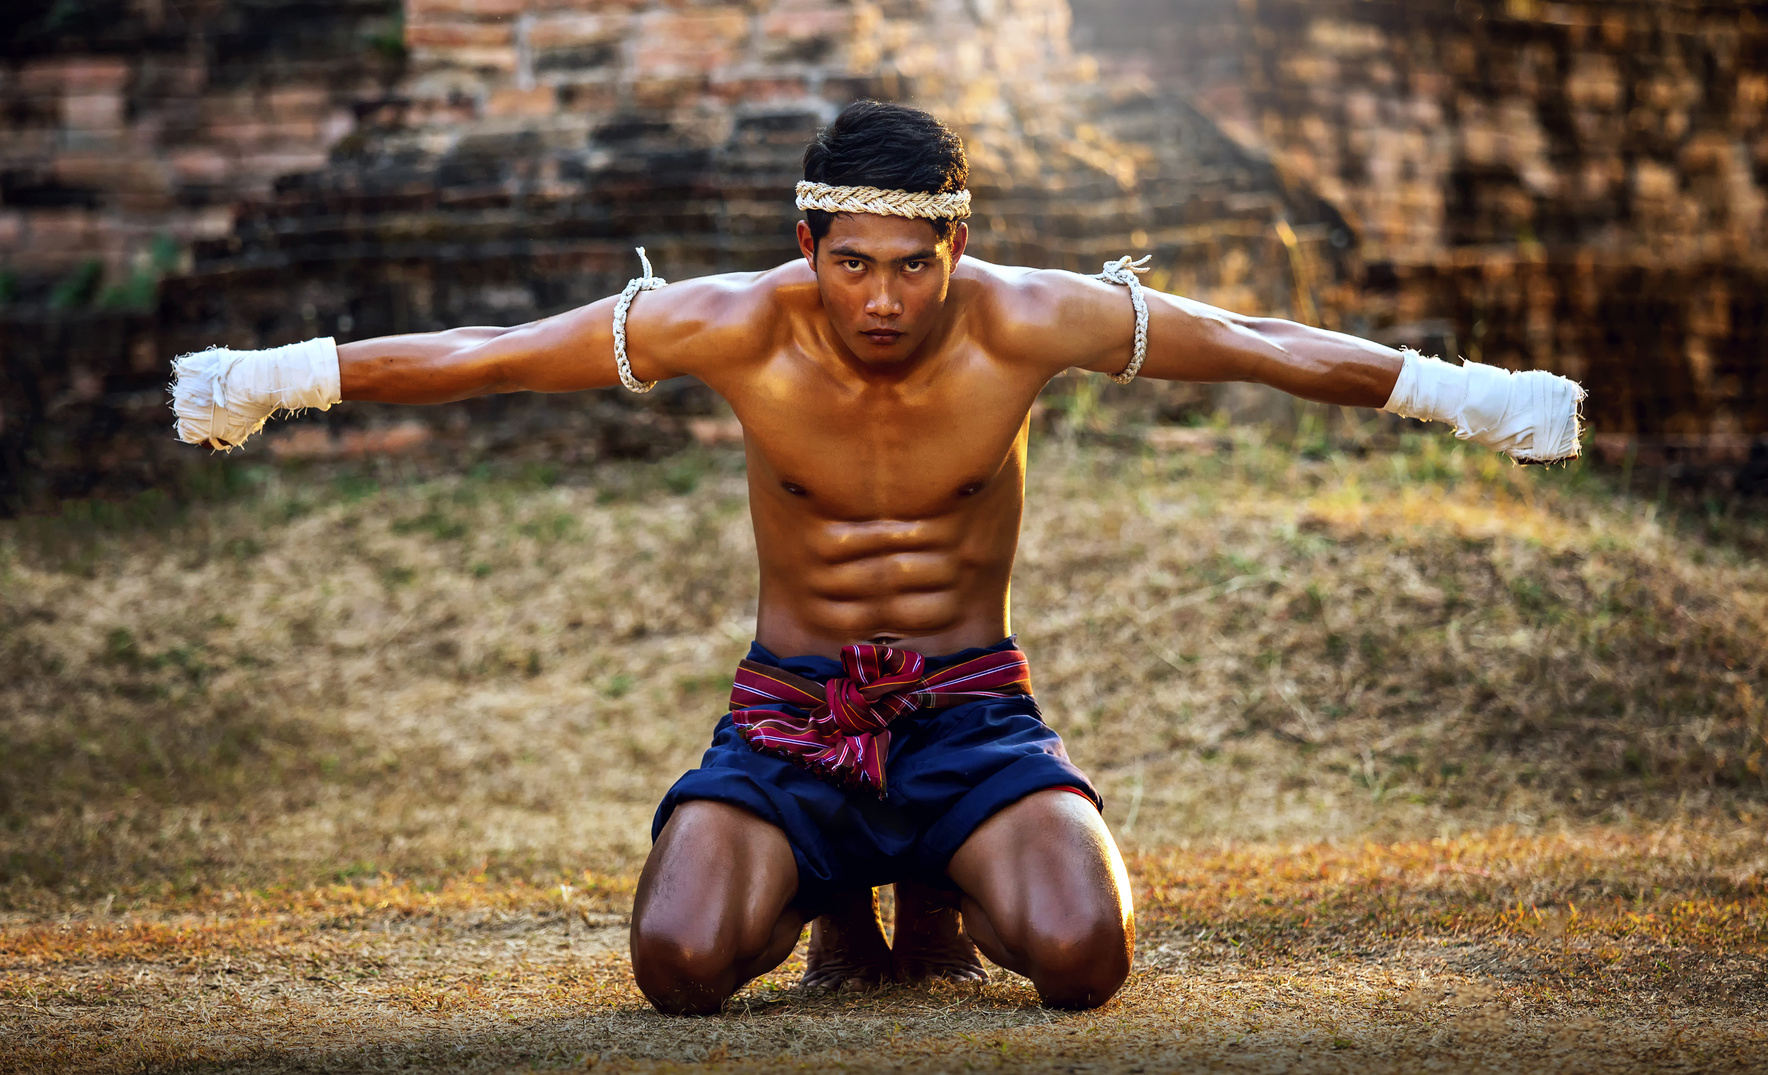 How Muay Thai Training Helps You Become a Better Person